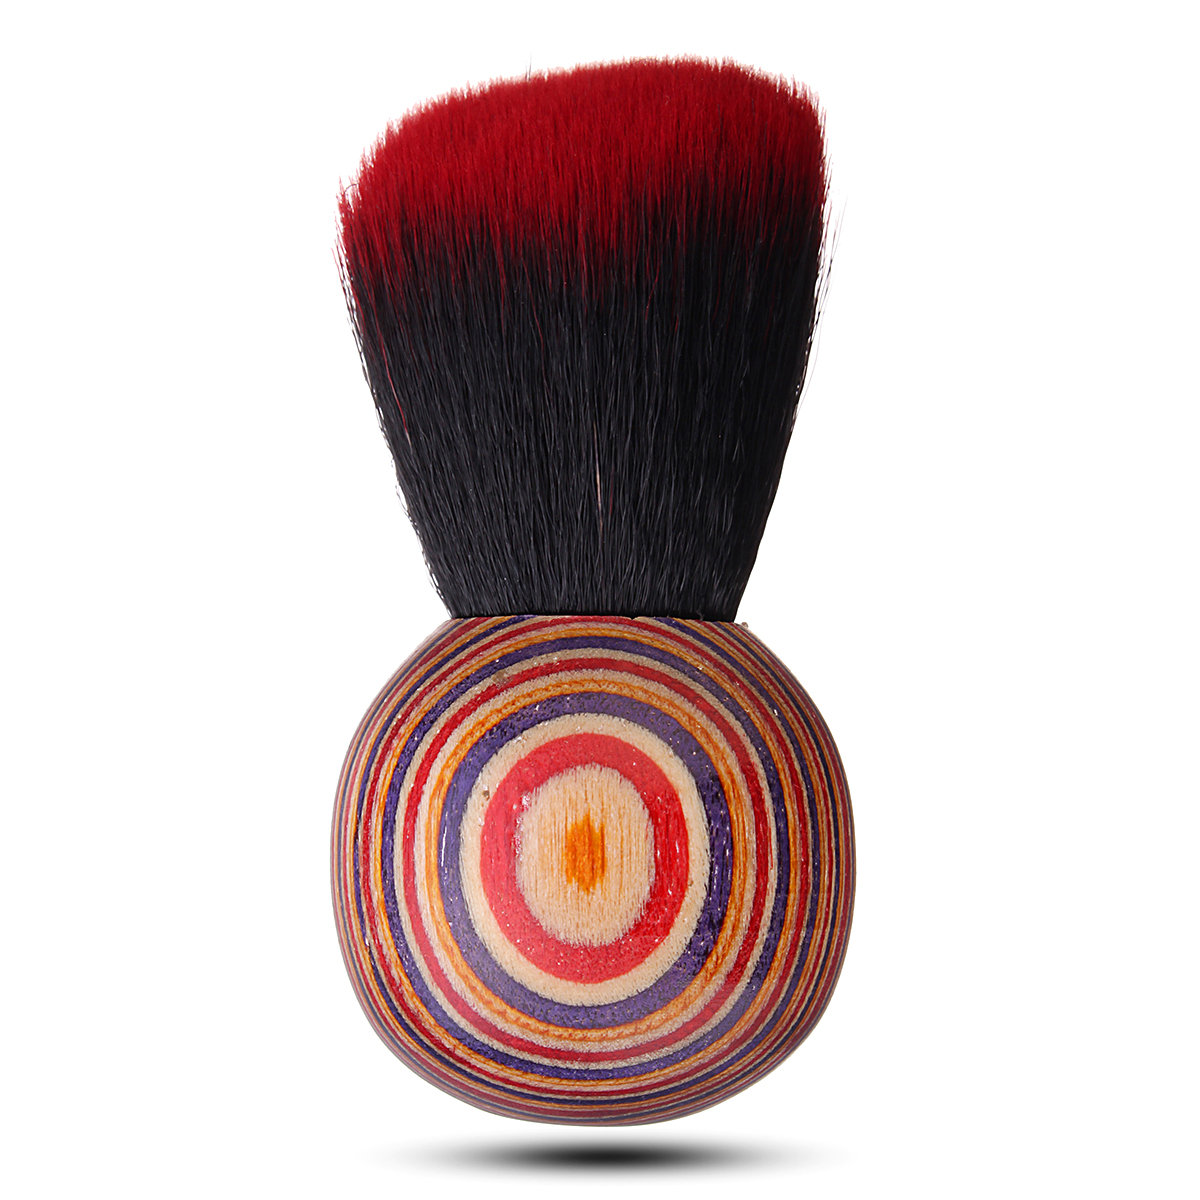 Folk Style Wooden Makeup Brush Blush Loose Powder Cosme